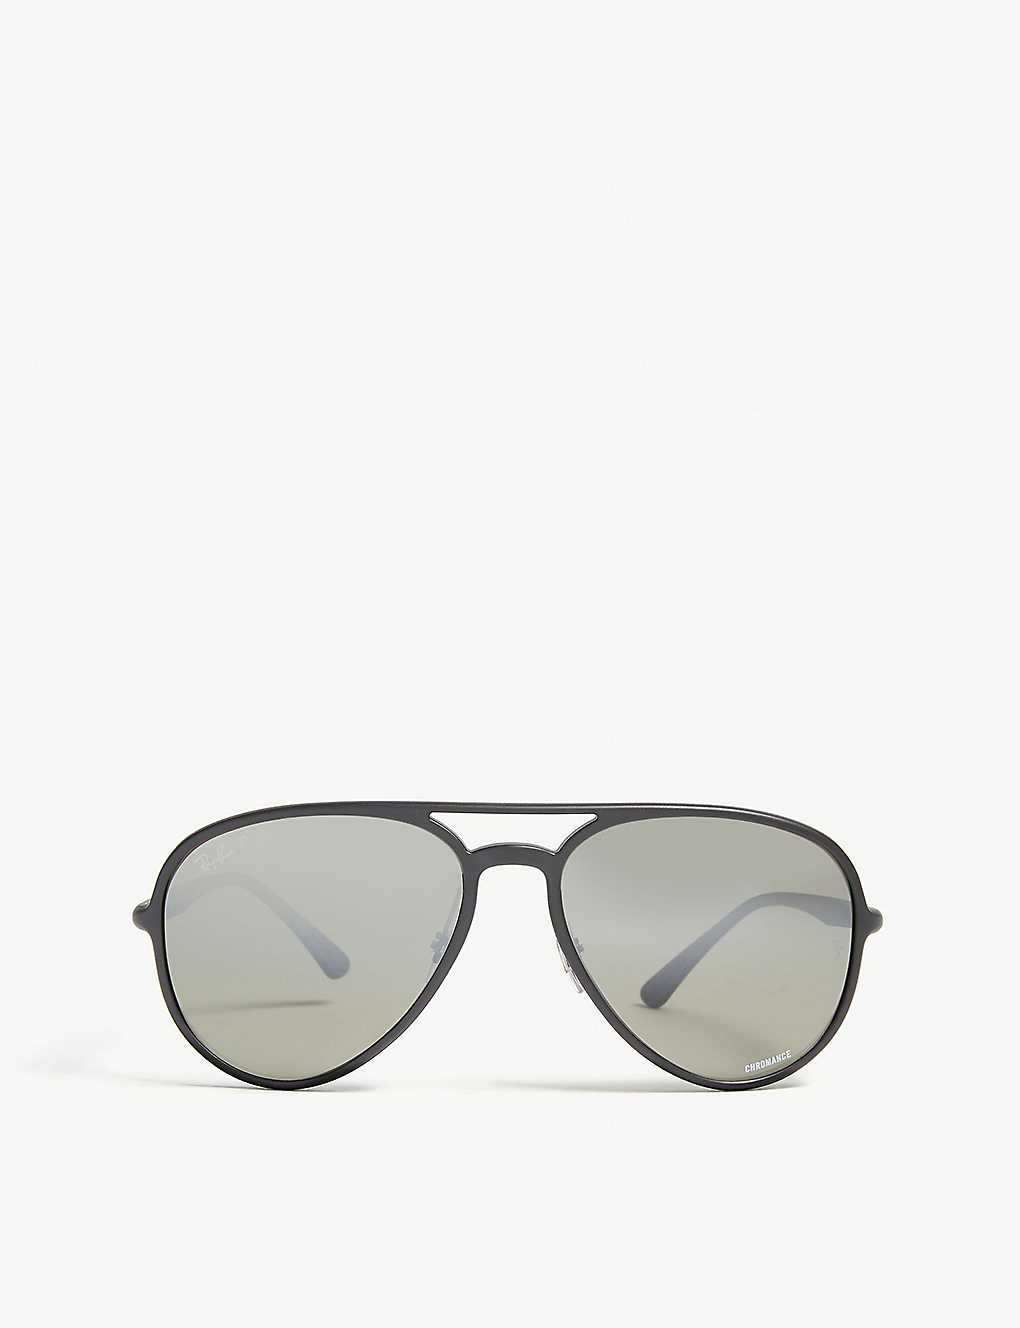 RAY-BAN: RB4320 Chromance Aviator sunglasses